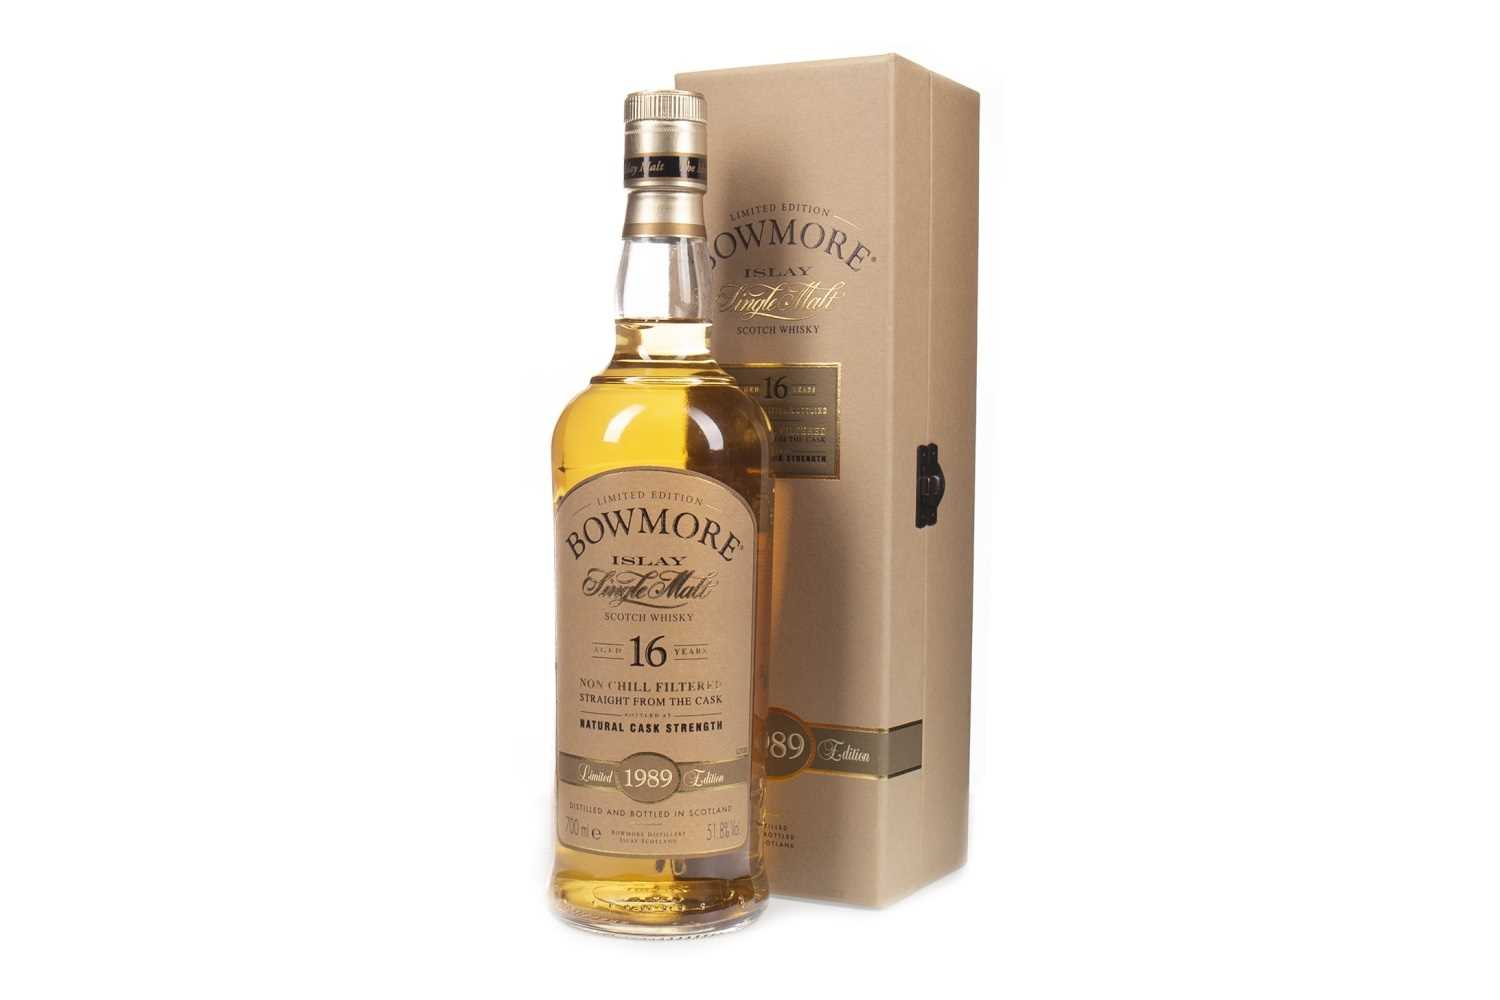 Lot 22-BOWMORE 1989 STRAIGHT FROM THE CASK AGED 16 YEARS